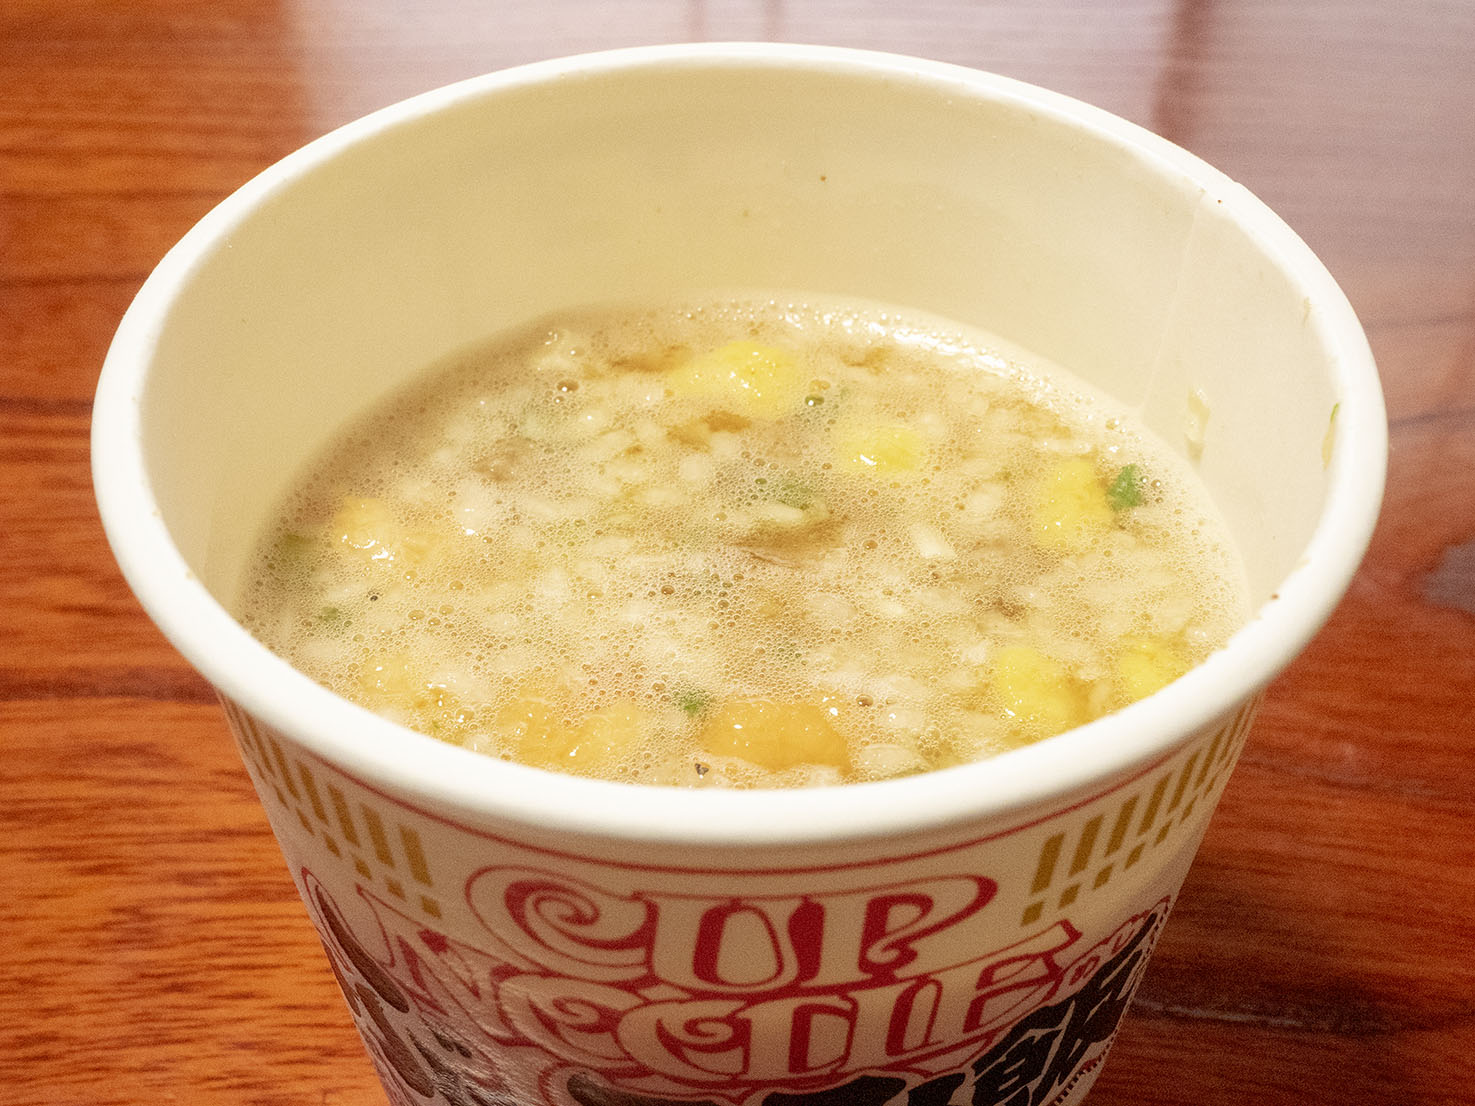 CUP NOODLE ぶっこみ飯